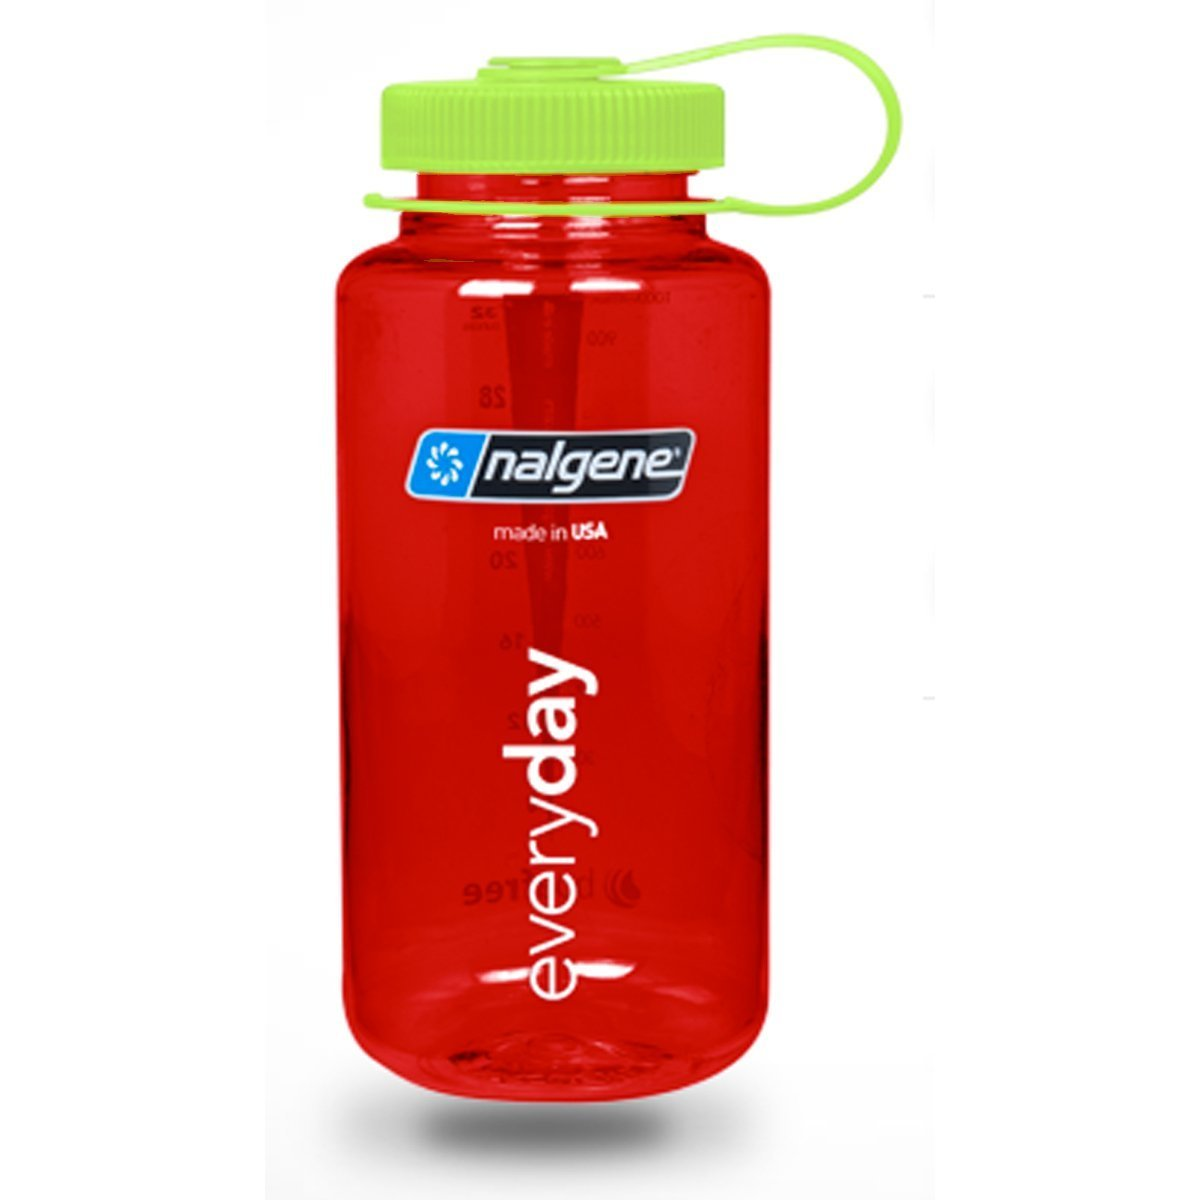 Nalgene Wide Mouth Water Bottle in Christmas Colors - 32 oz., Red w/ Green Cap